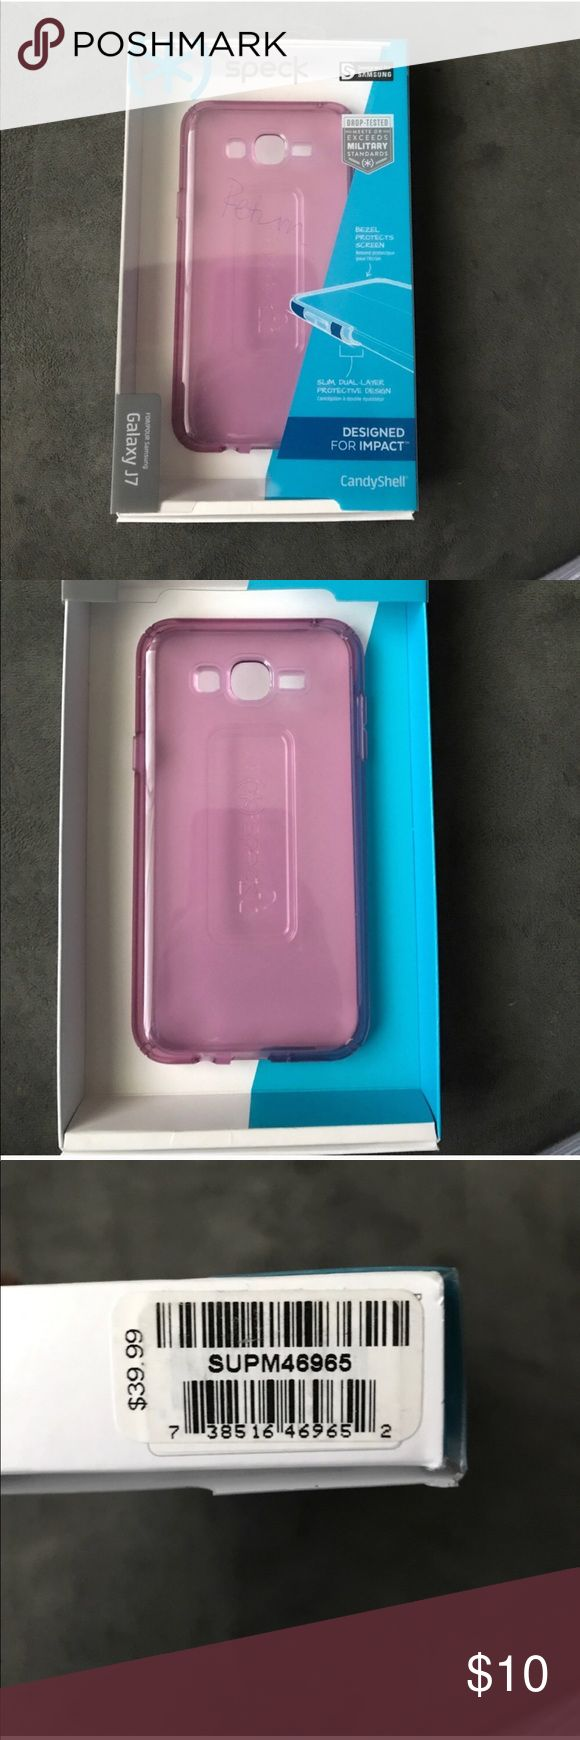 Samsung galaxy J7 case pink Brand new open box Samsung J7 case. Speck brand. Pink color. Great quality. Originally retails for $39.99 speck Accessories Phone Cases